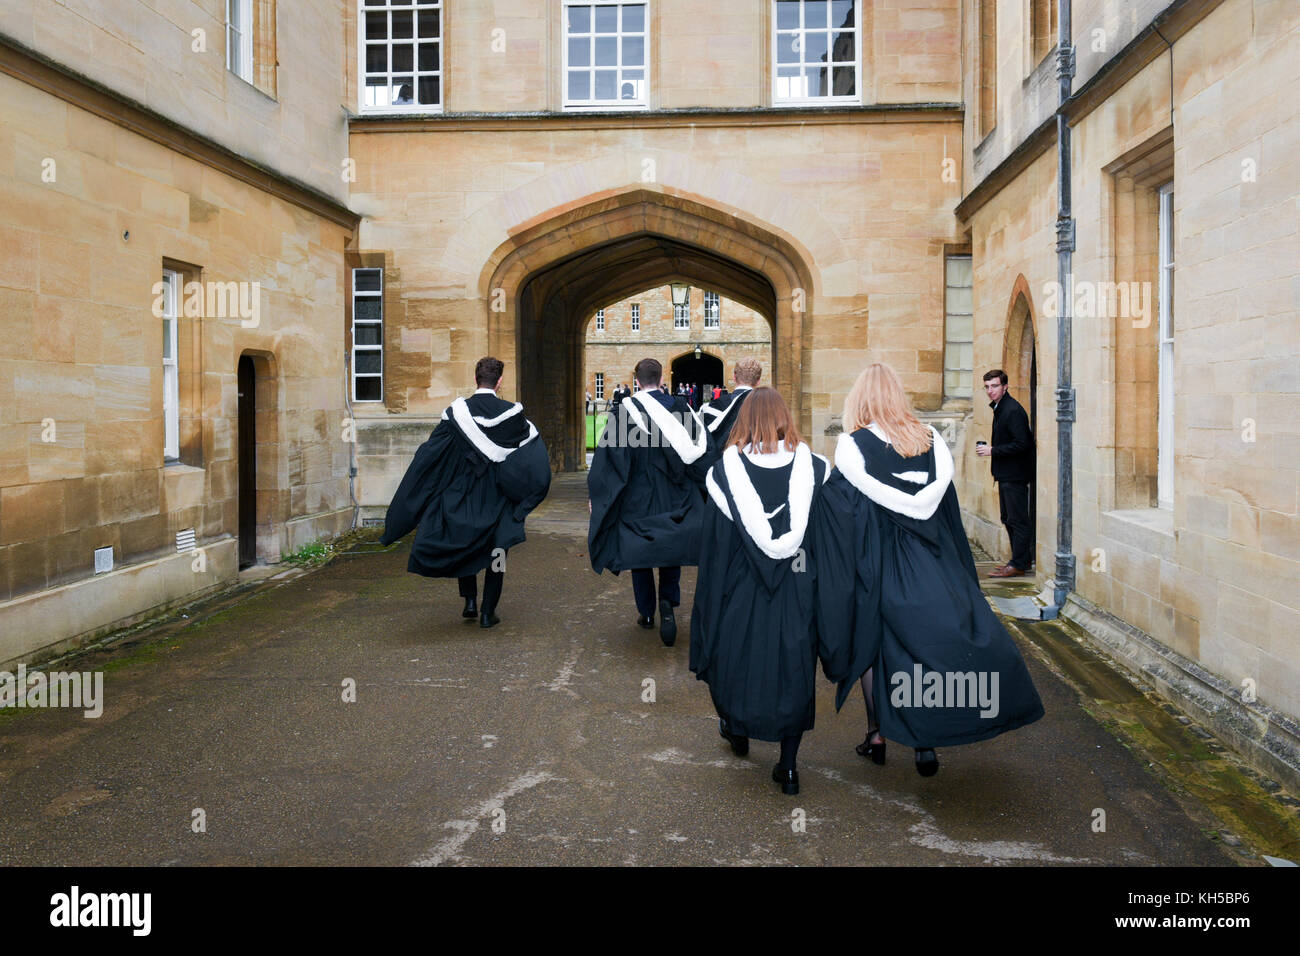 Newly graduated Oxford students in traditional 'sub fusc' gowns - Stock Image